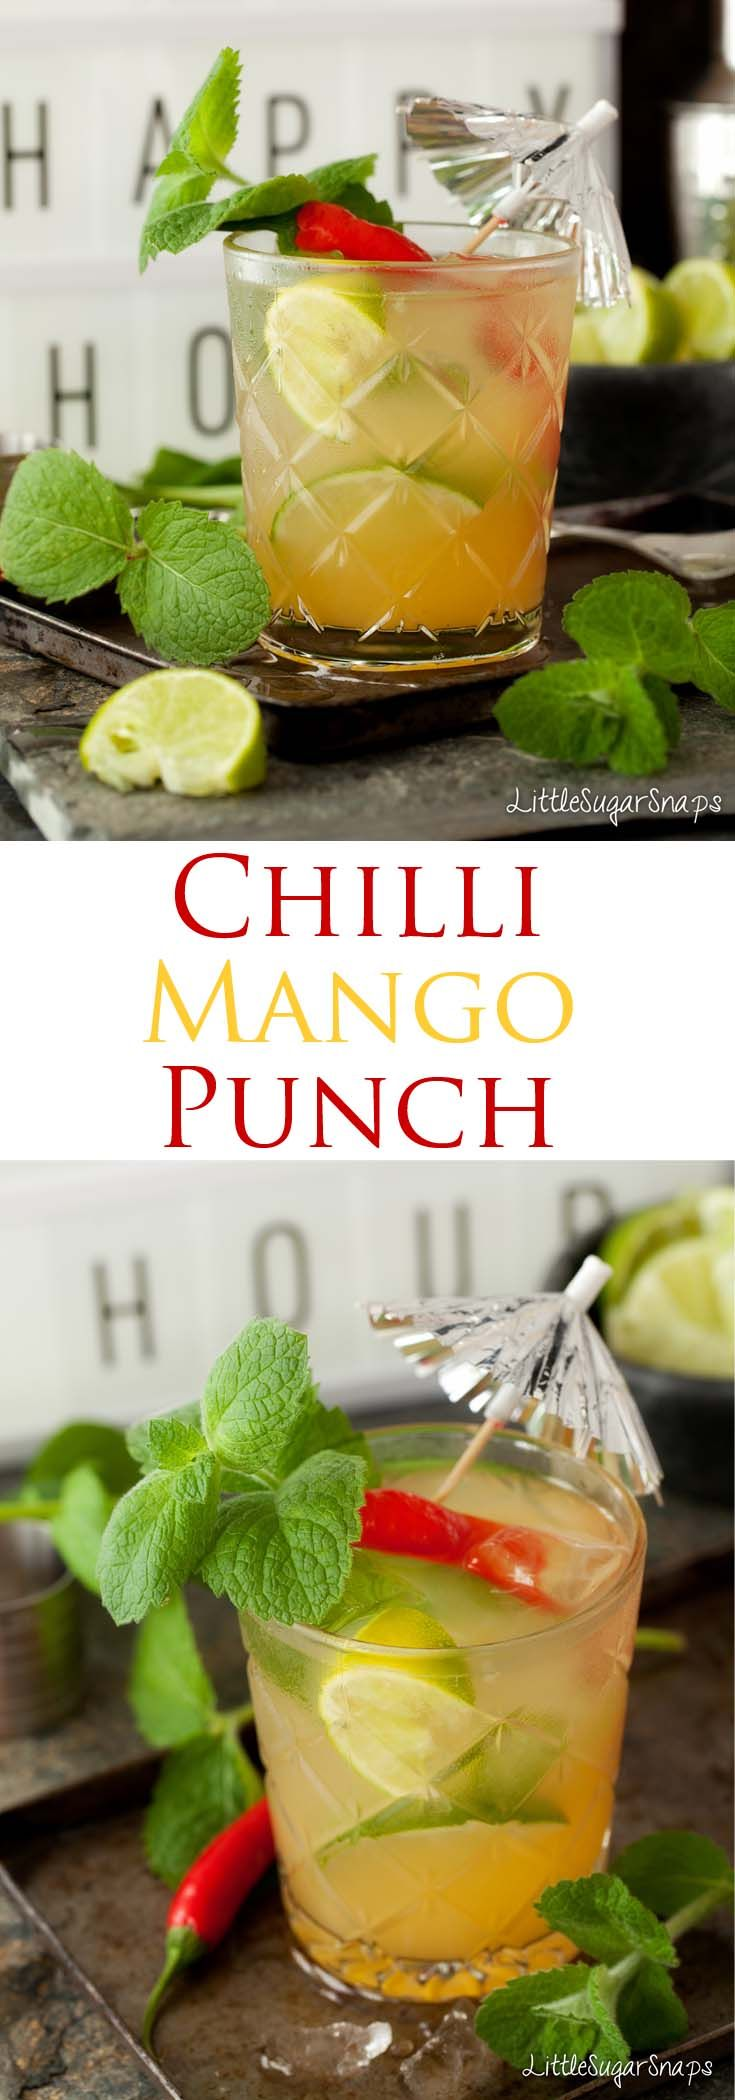 Chilli Mango Punch